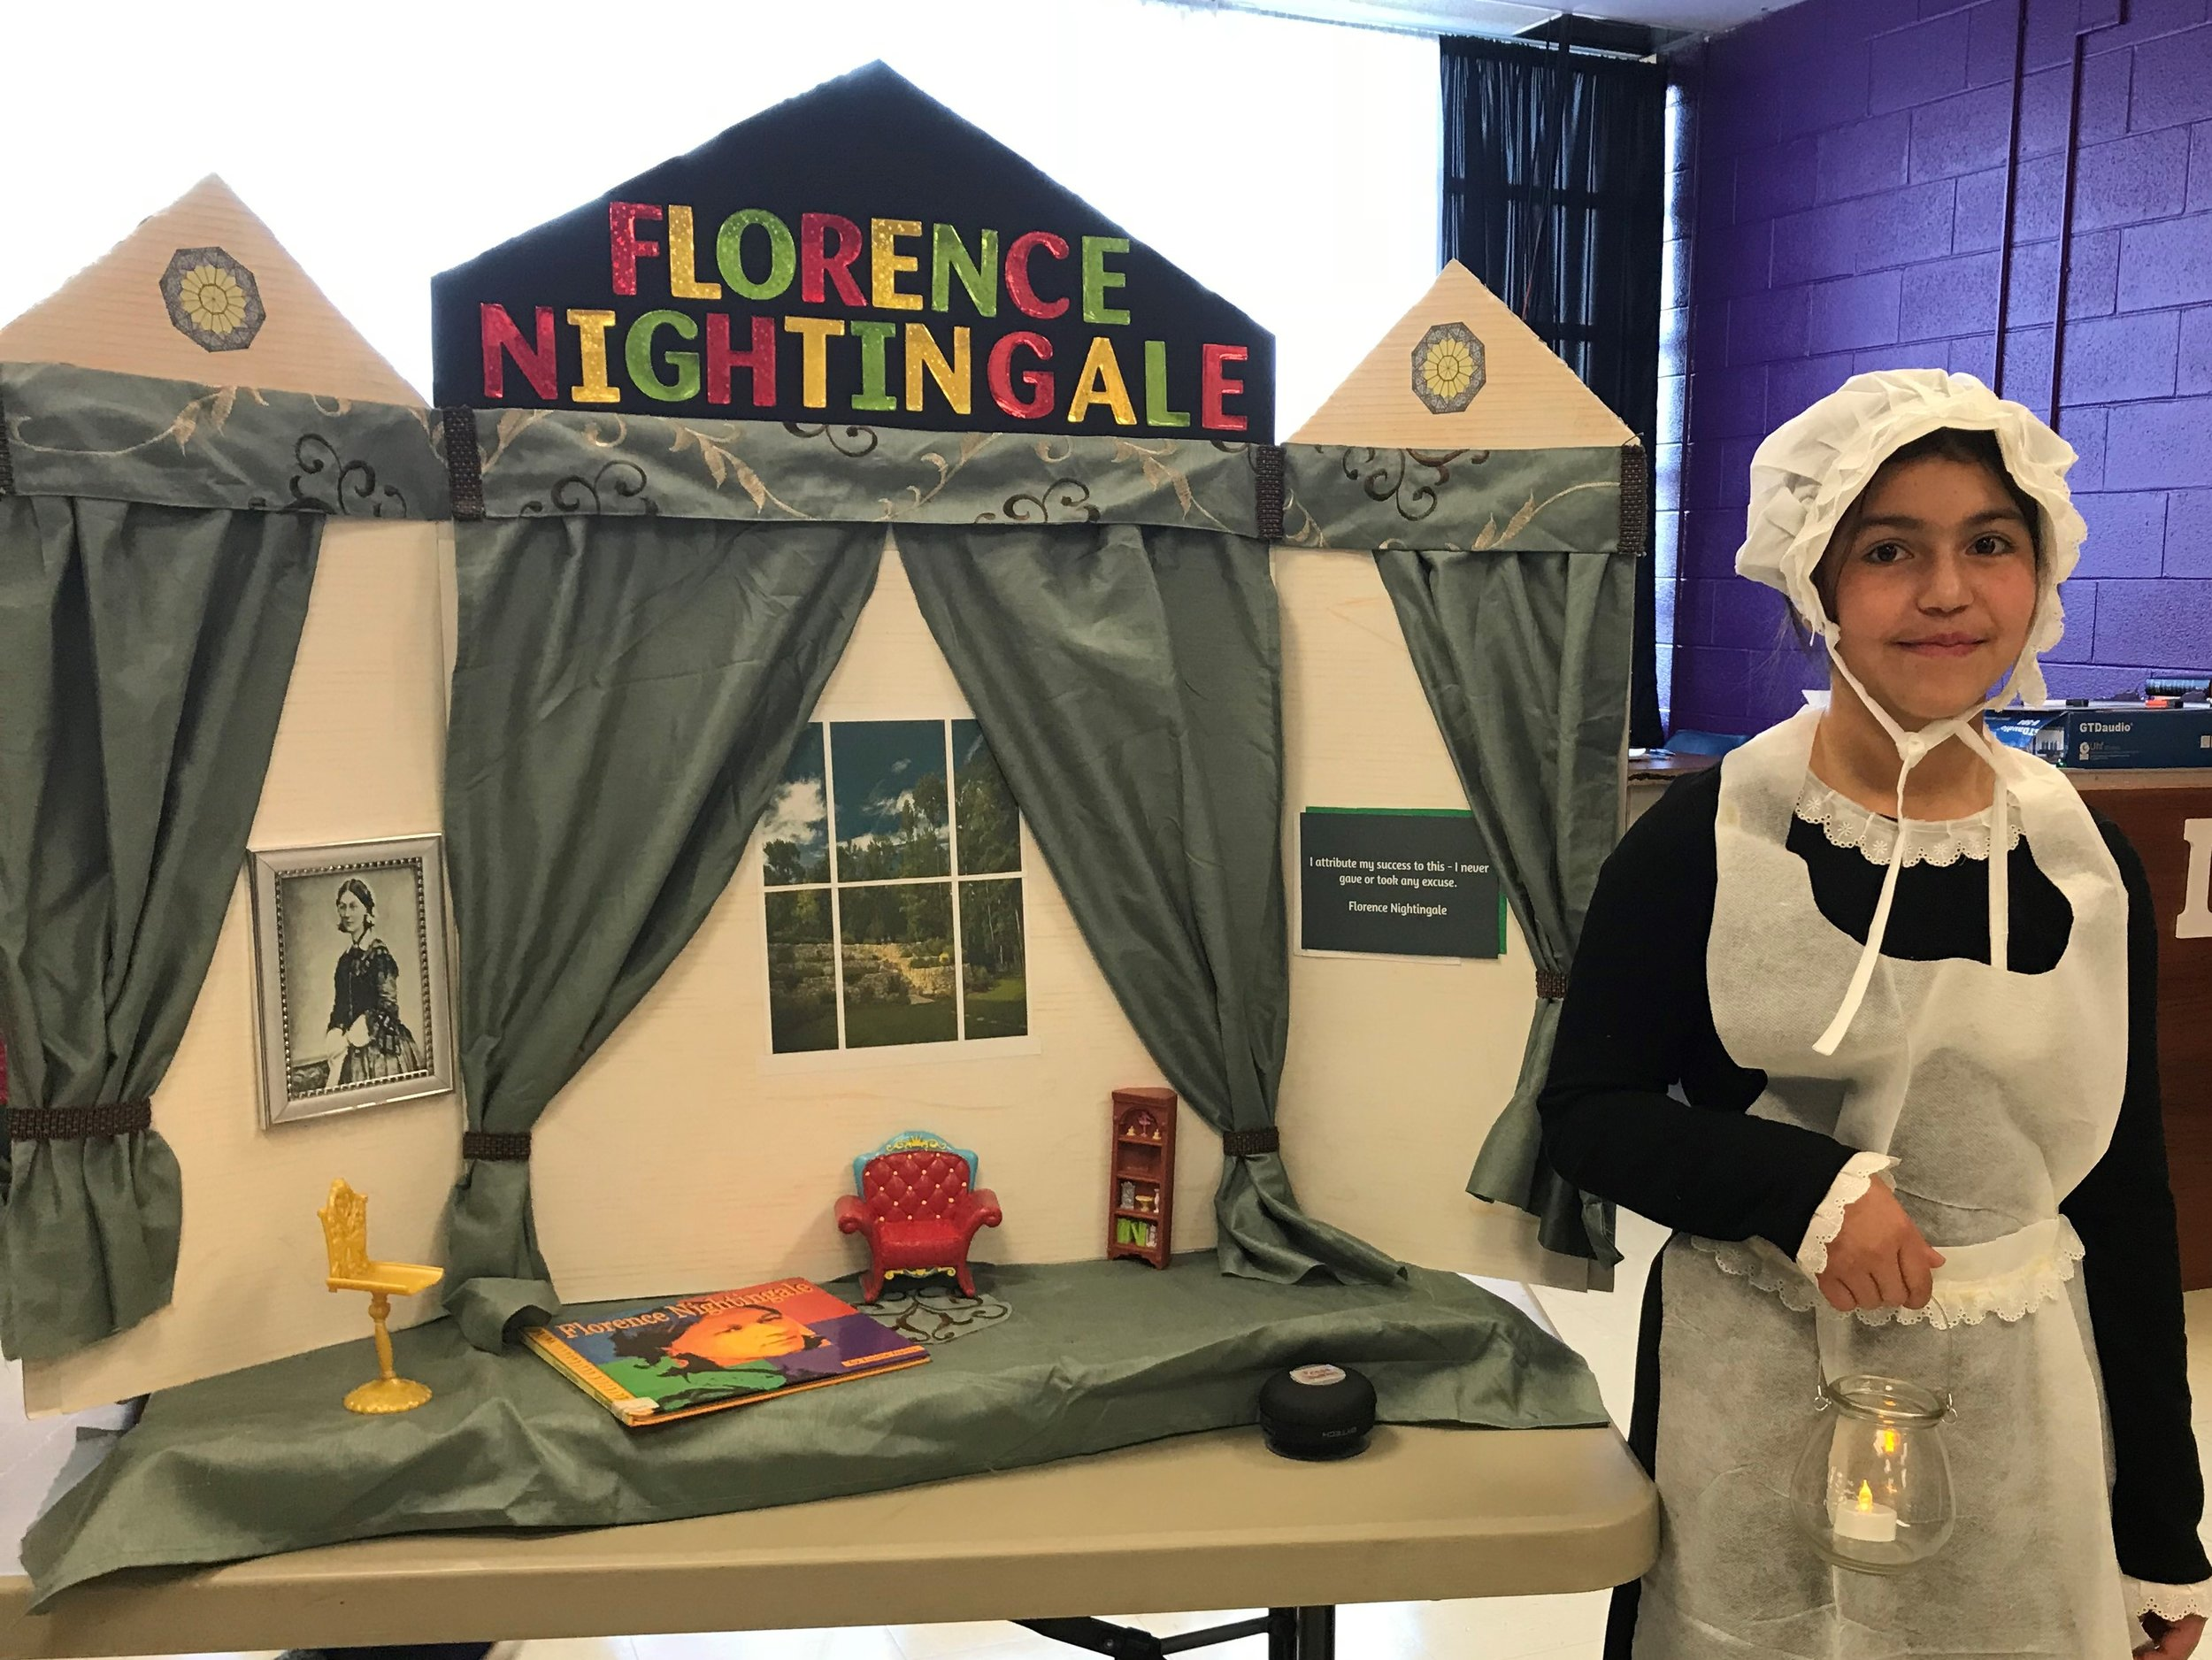 Camila Morales-Fernandez received 2nd place for her portrayal as Florence Nightingall.